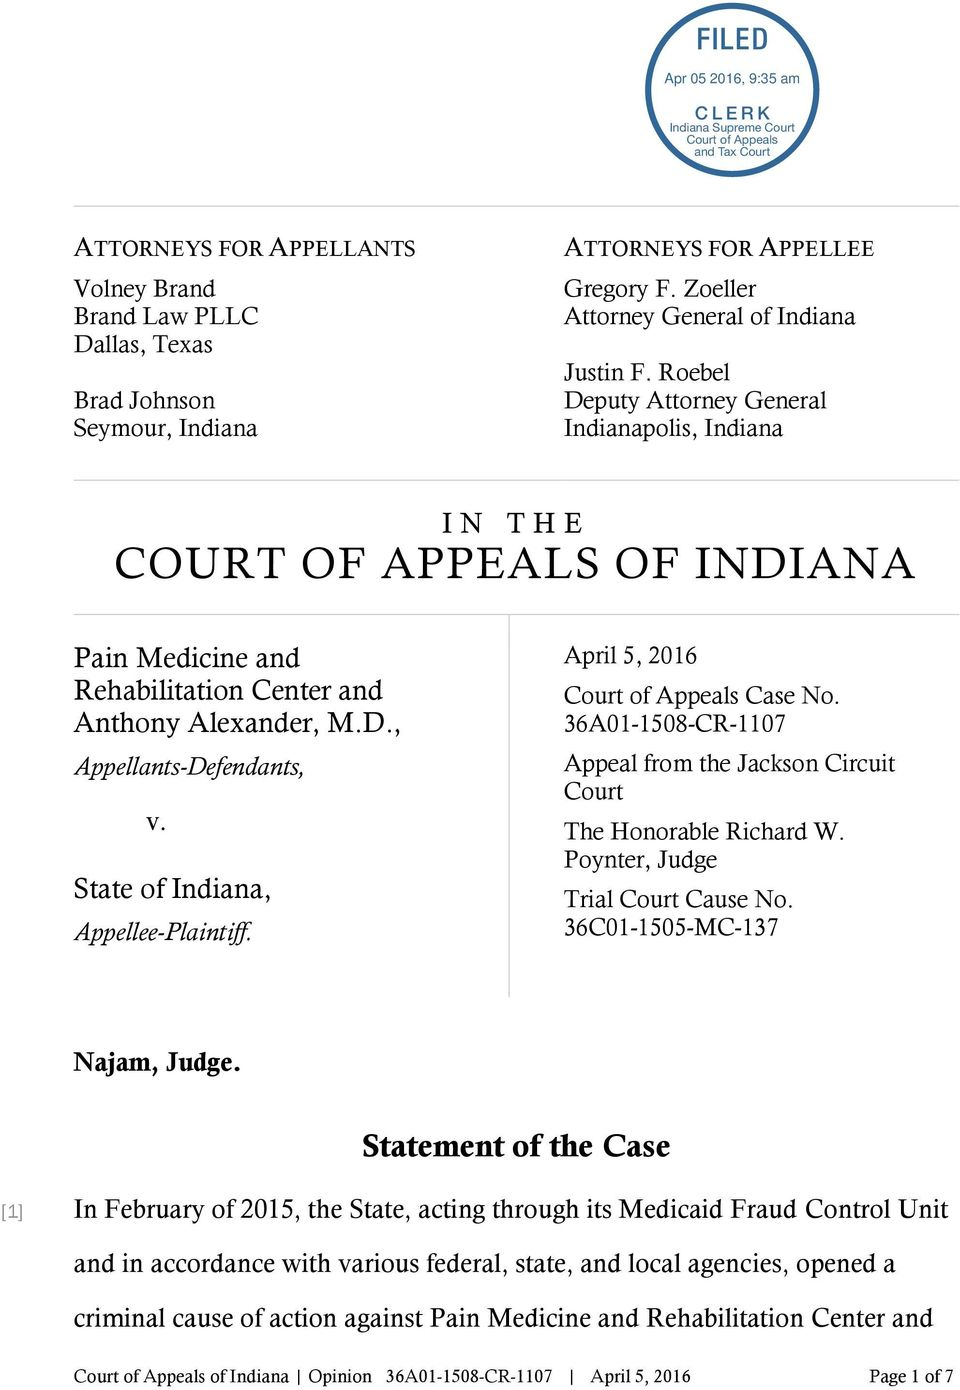 State of Indiana, Appellee-Plaintiff. April 5, 2016 Court of Appeals Case No. 36A01-1508-CR-1107 Appeal from the Jackson Circuit Court The Honorable Richard W. Poynter, Judge Trial Court Cause No.